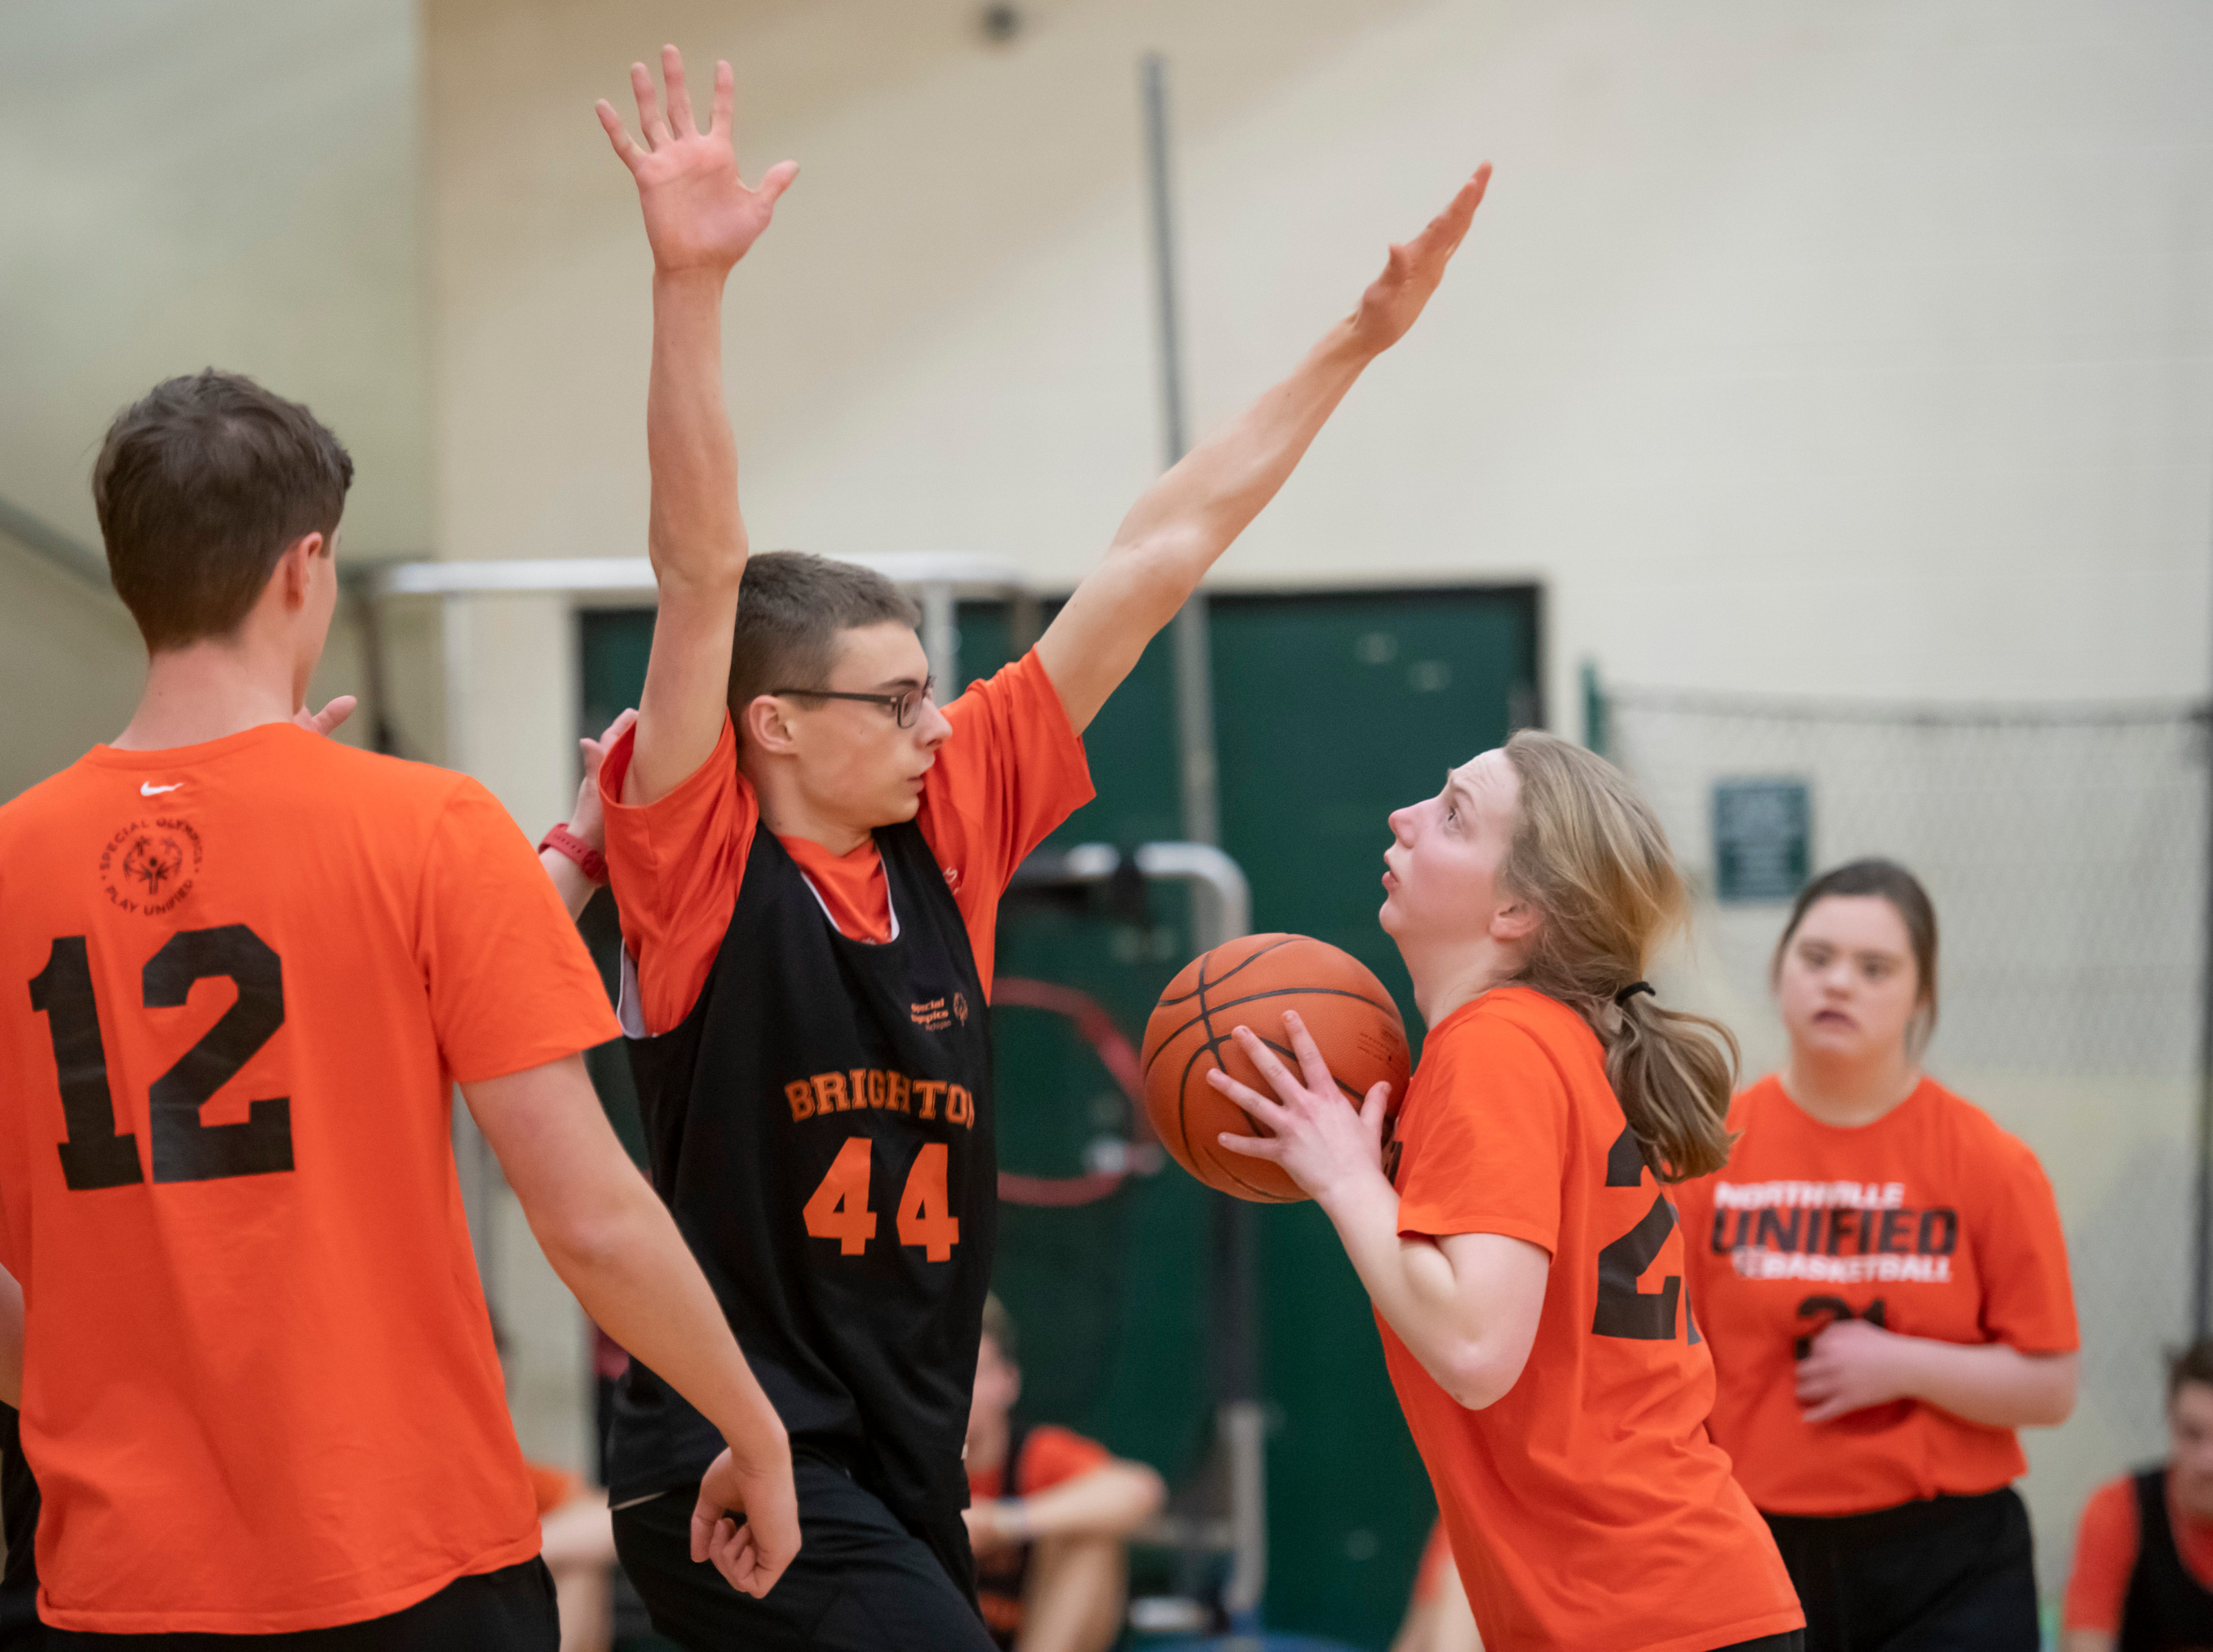 Brighton's Zach Thomas defends against Northville Unified's Jane Colter during the Kensington Lakes Athletic Association Unified basketball tournament at Novi high school, February 21, 2019. The co-ed games have teams of players with and without disabilities.